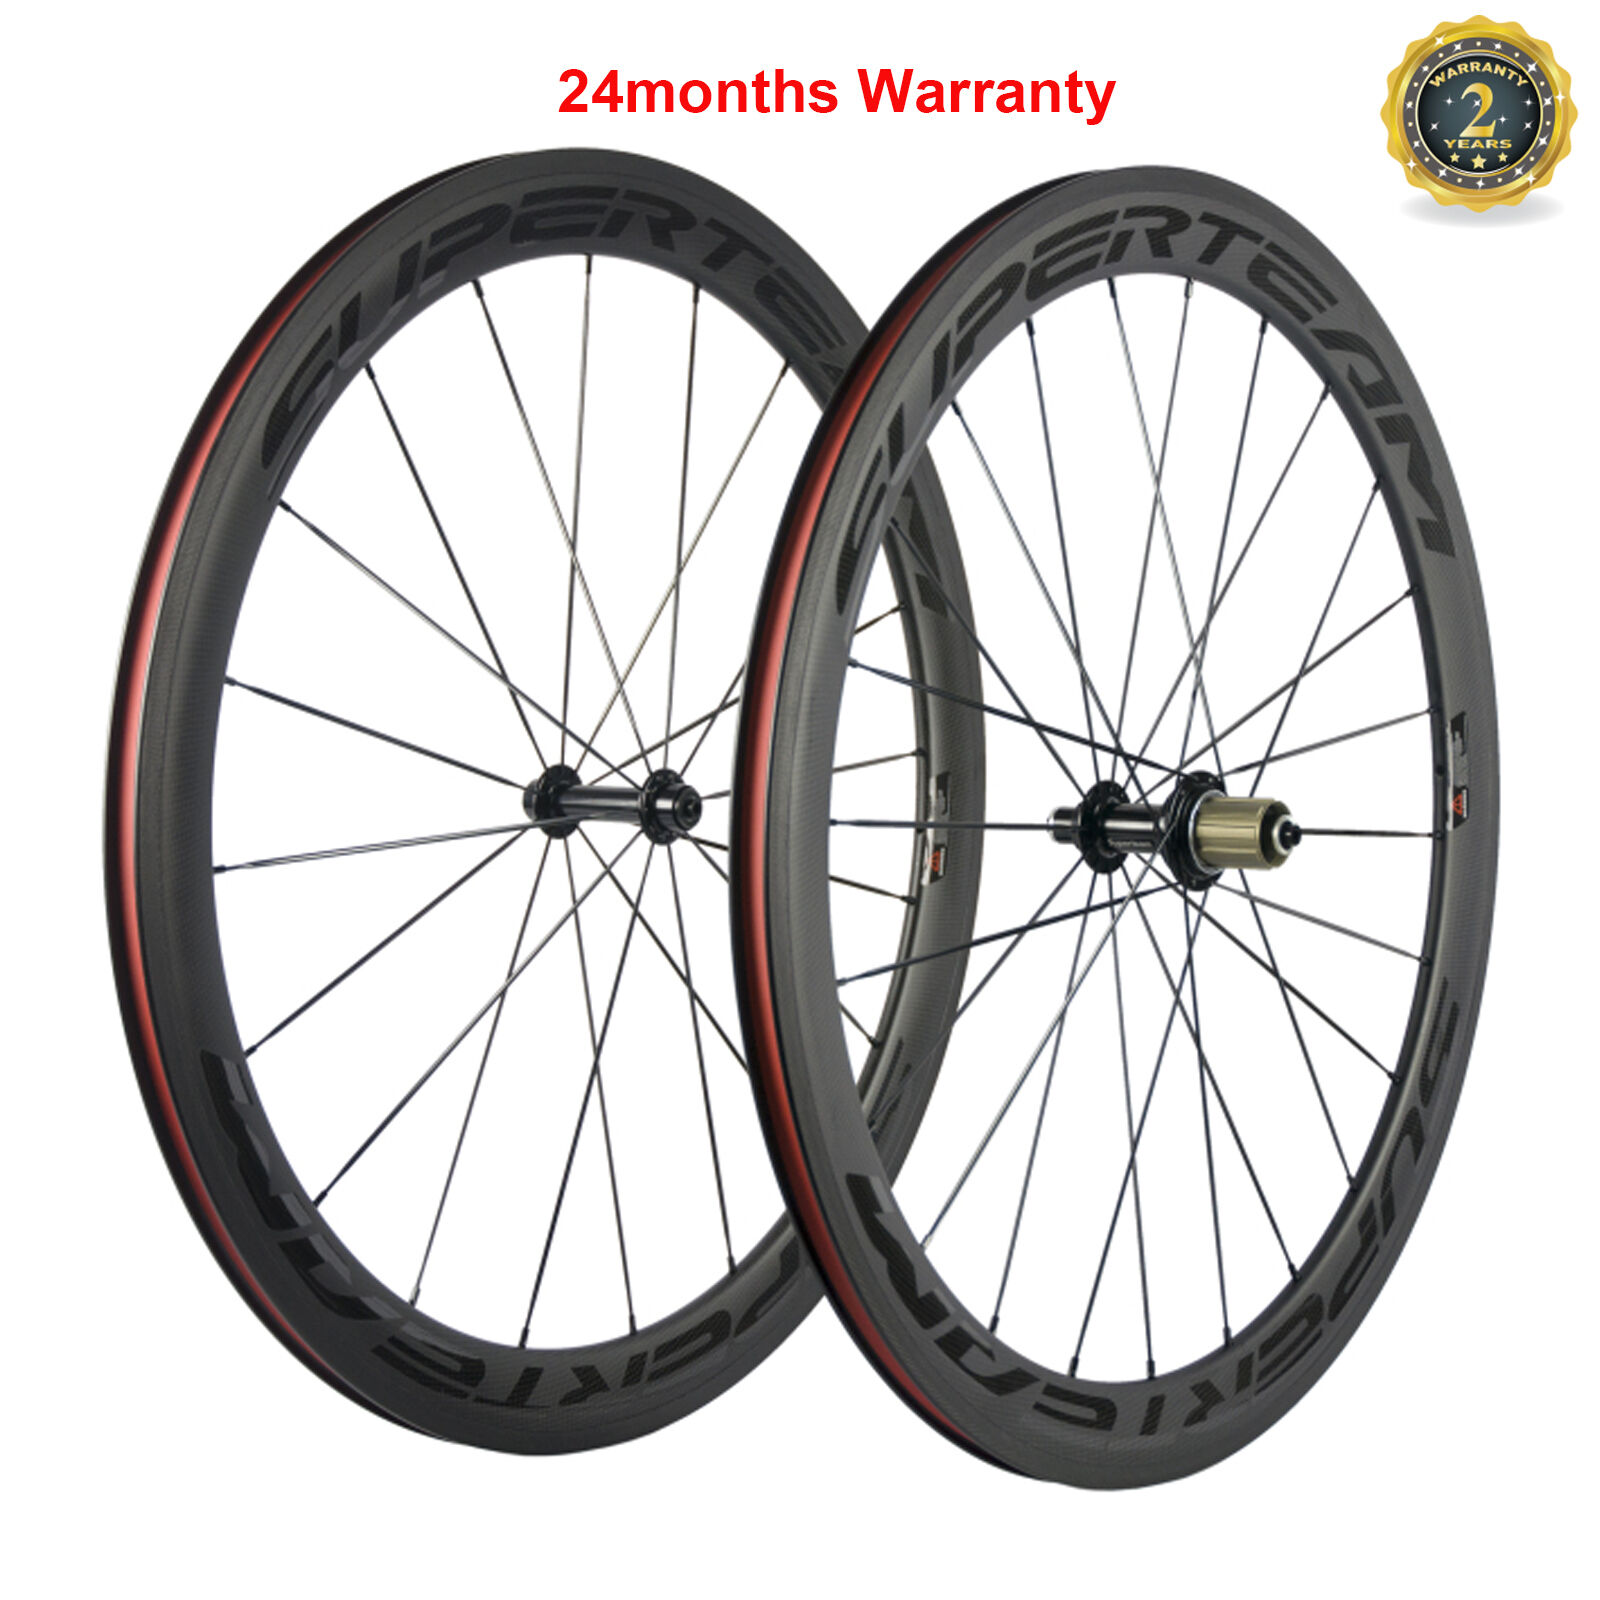 Carbon Wheelset Clincher 50mm Carbon Wheels Bicyle  Cycle Match Wheels 700C Wheel  fantastic quality